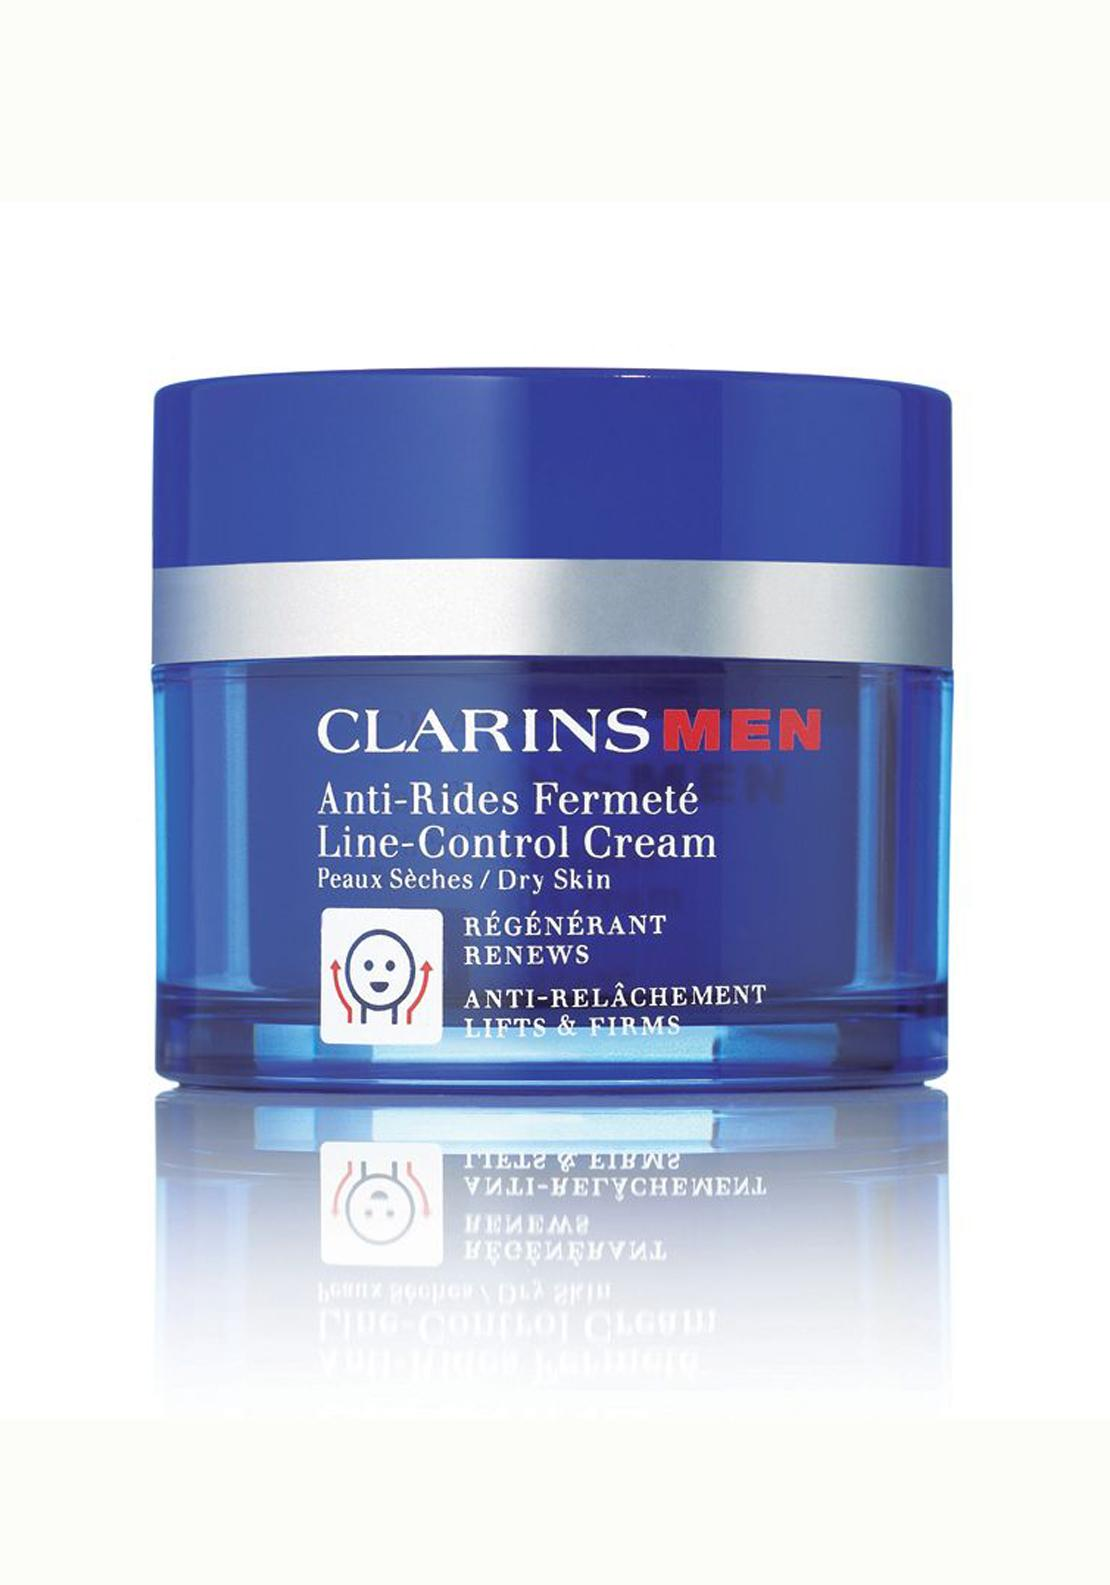 Clarins Men Line-Control Cream (Dry Skin) 50ml